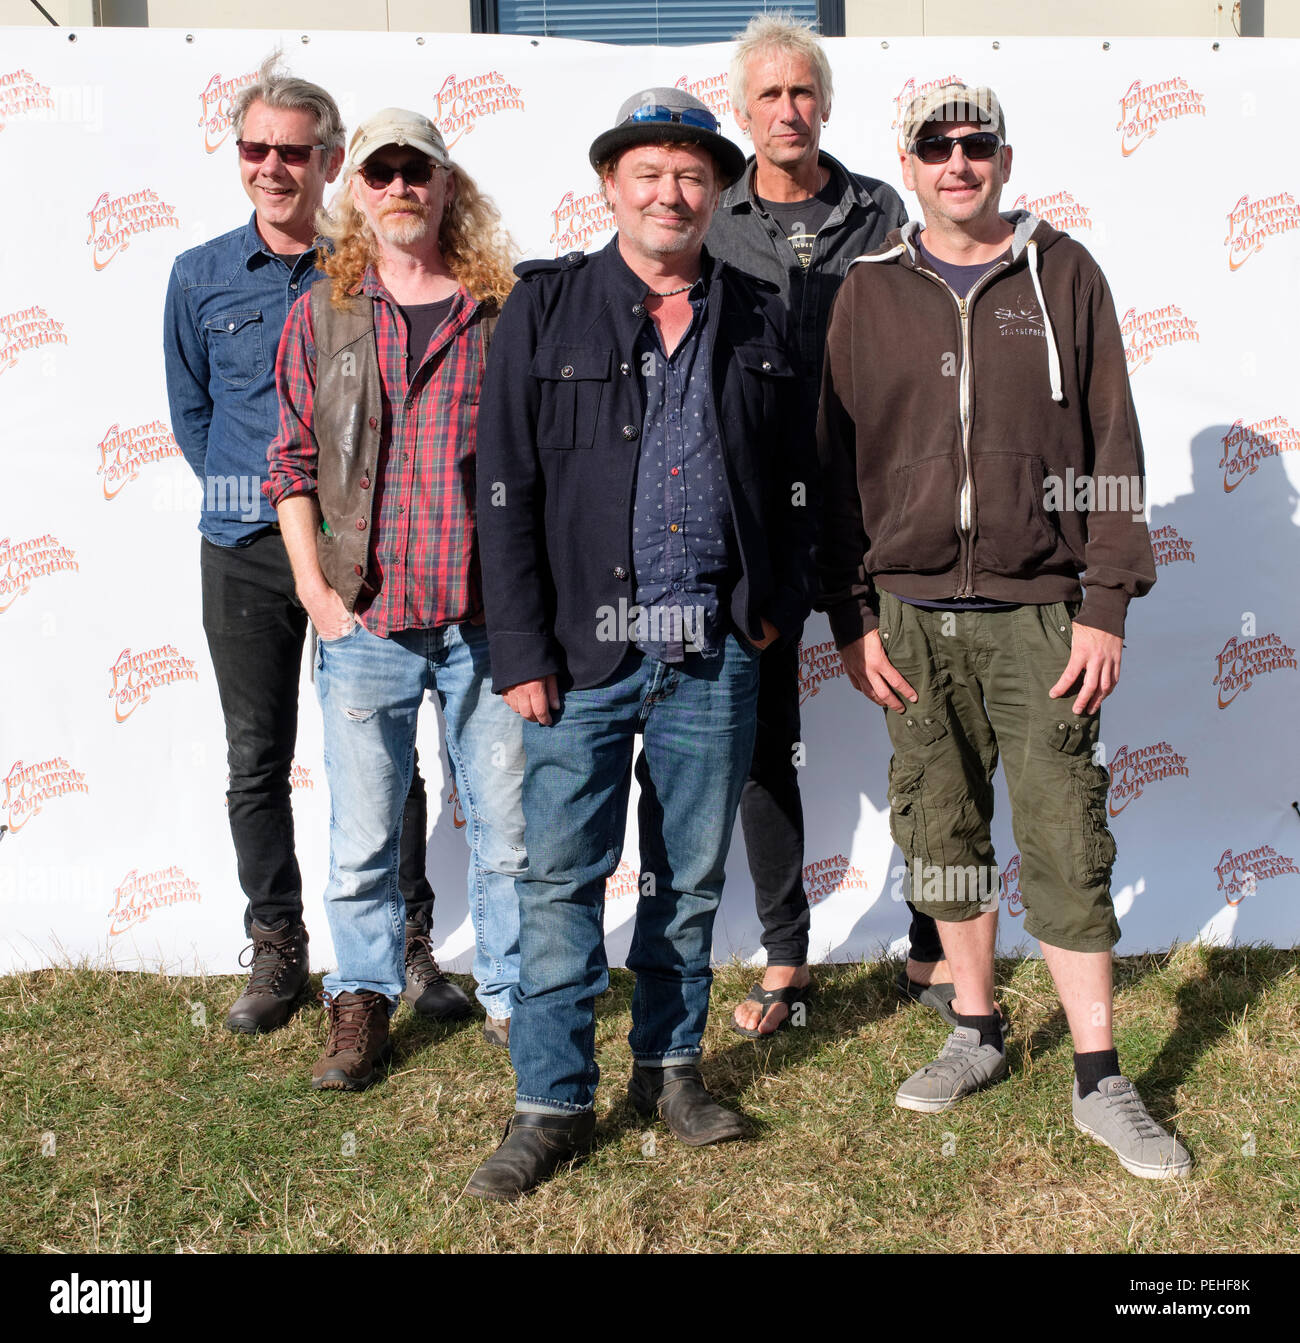 The Levellers backstage at Fairport's Cropredy Convention, England, UK. August 10, 2018 - Stock Image